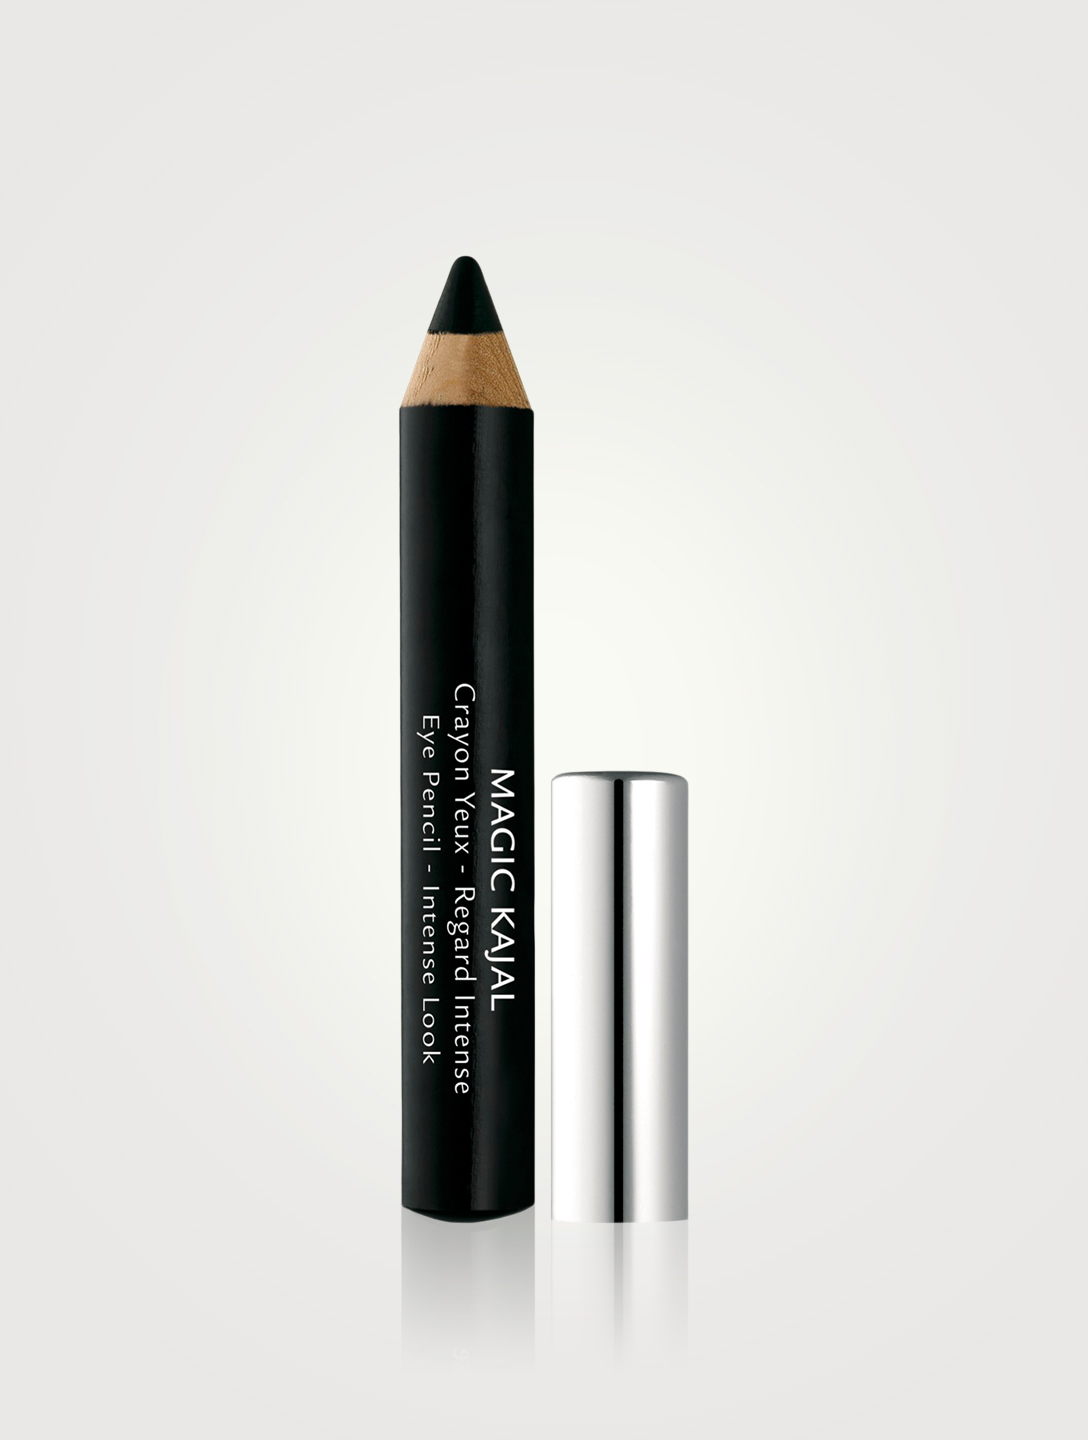 GIVENCHY Crayon yeux Magic Kajal Beauté Noir